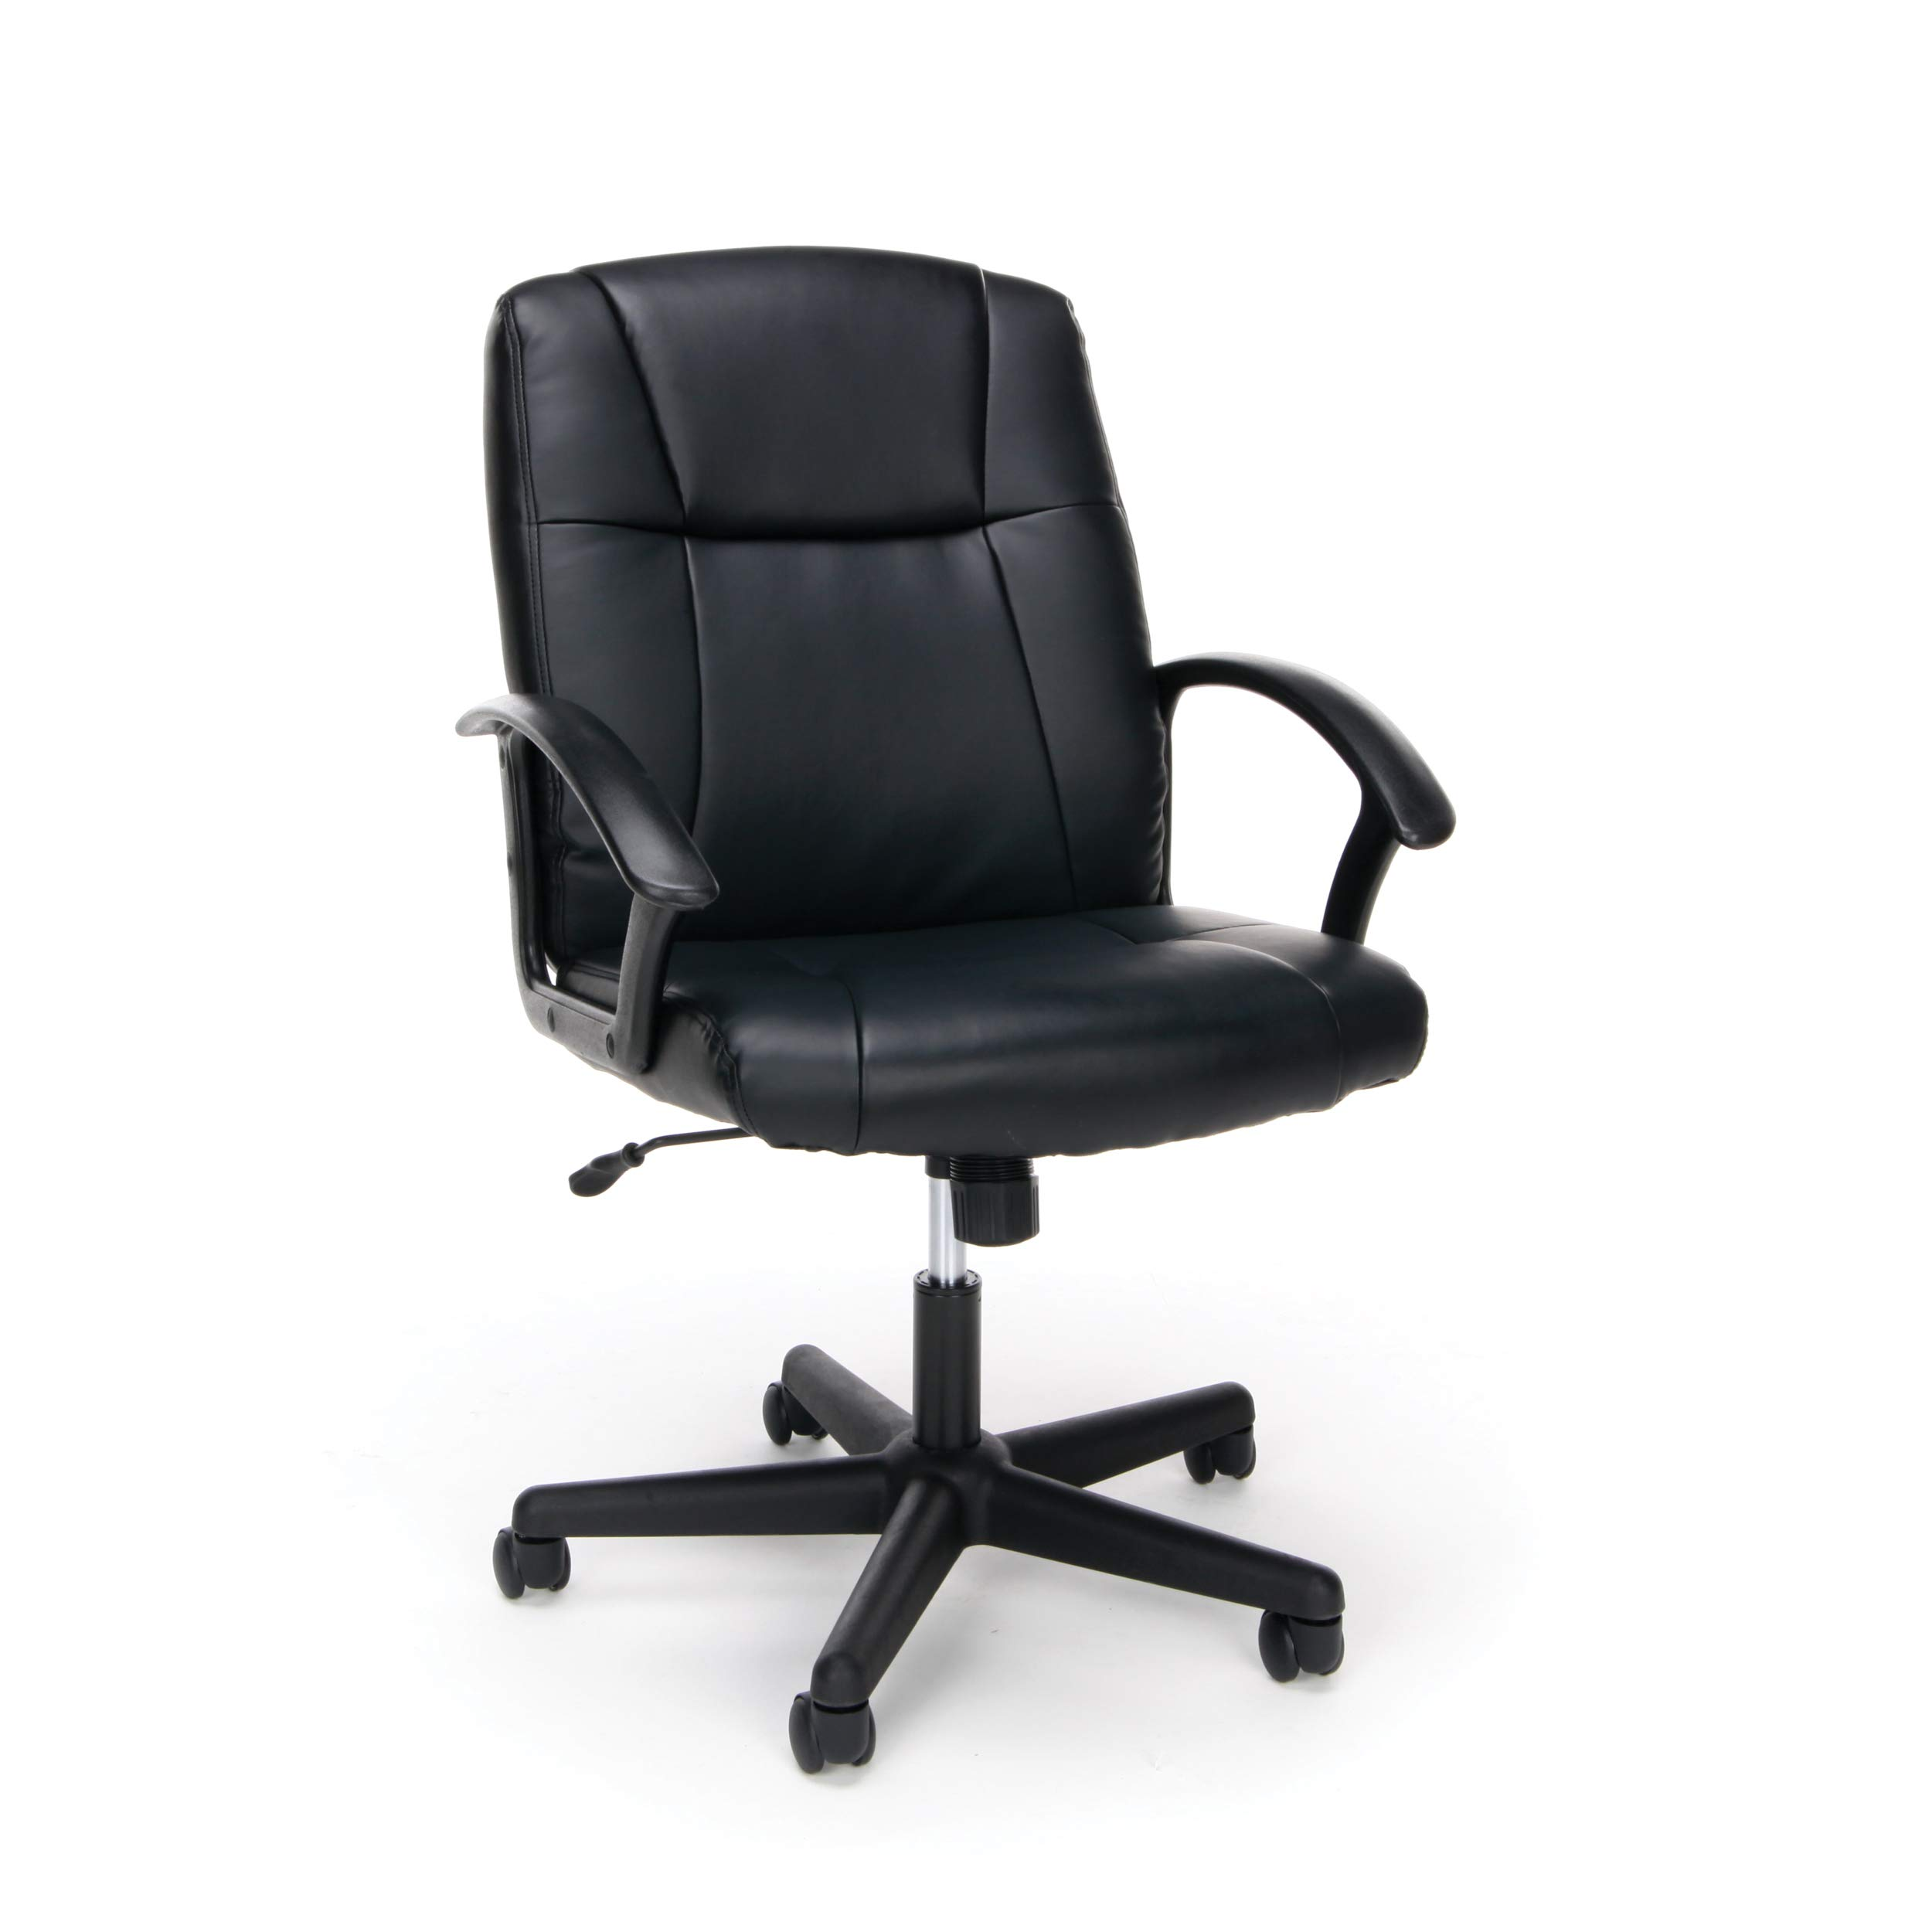 Essentials Leather Executive Office Computer